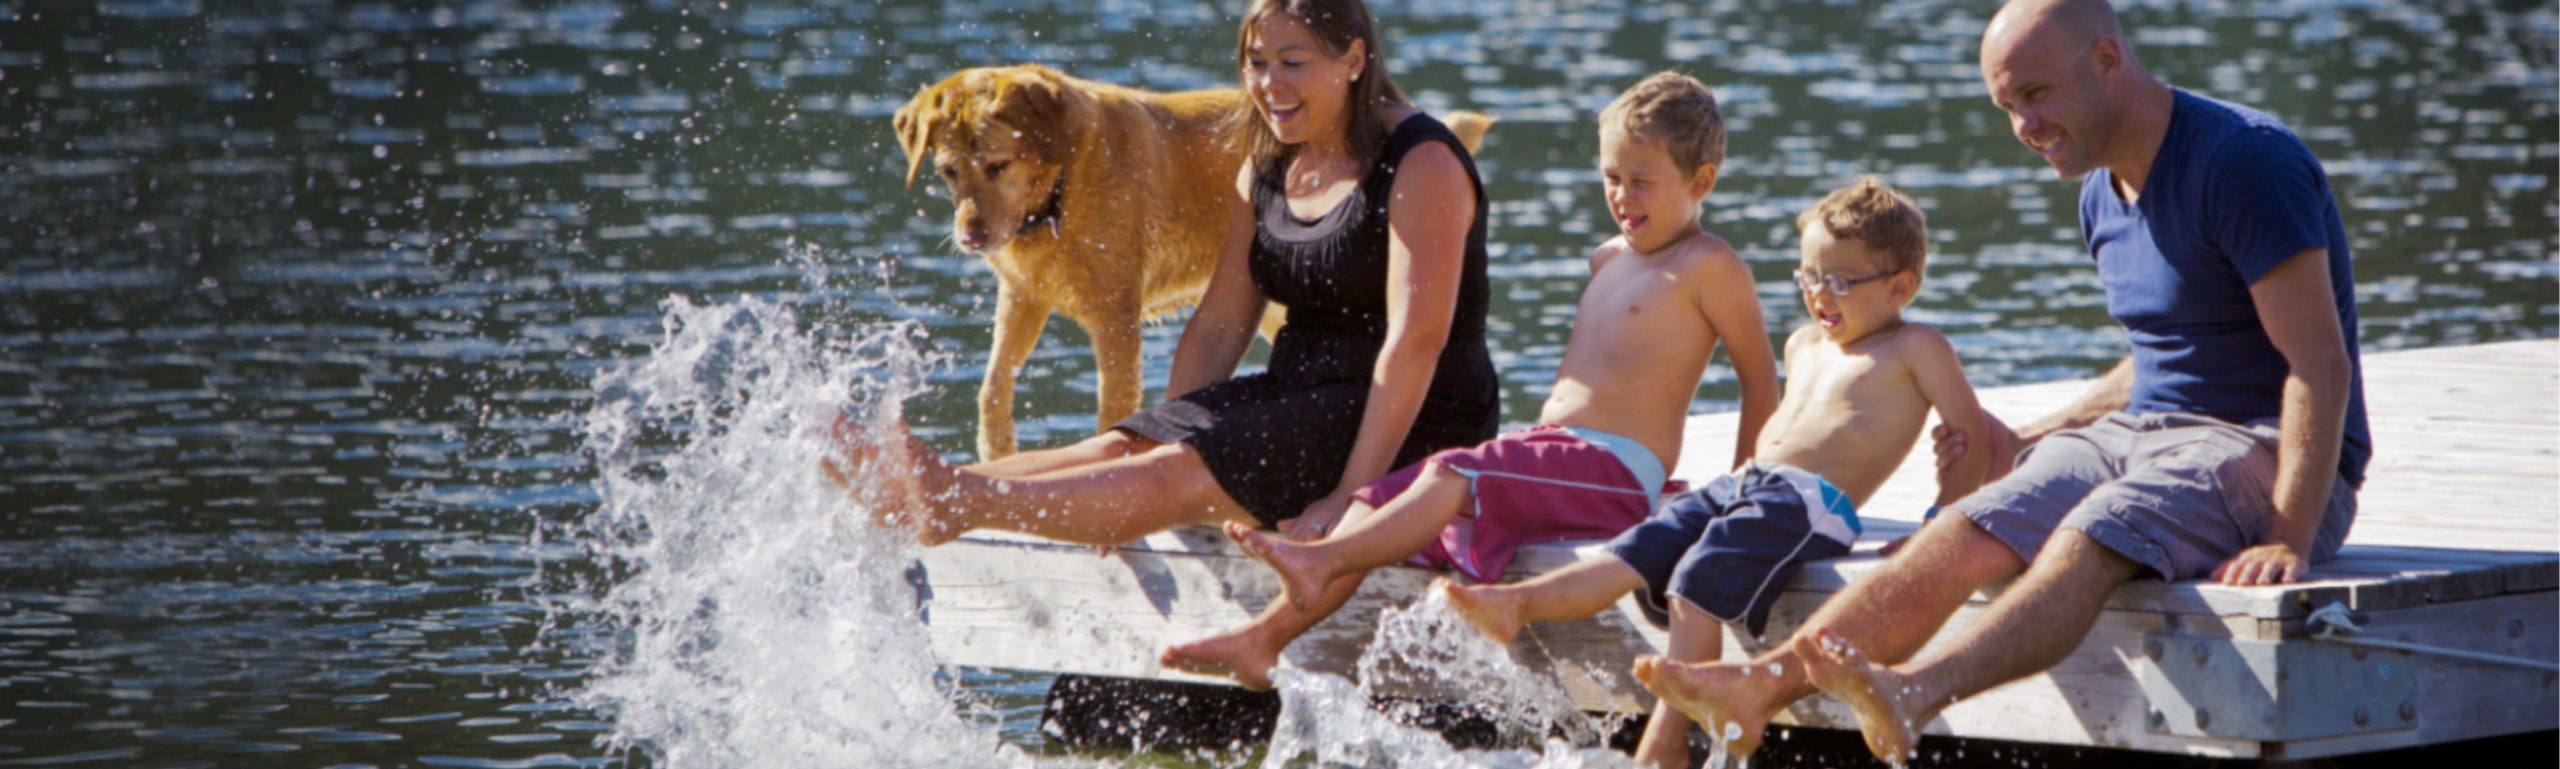 Family with dog at a lake on a swimming dock